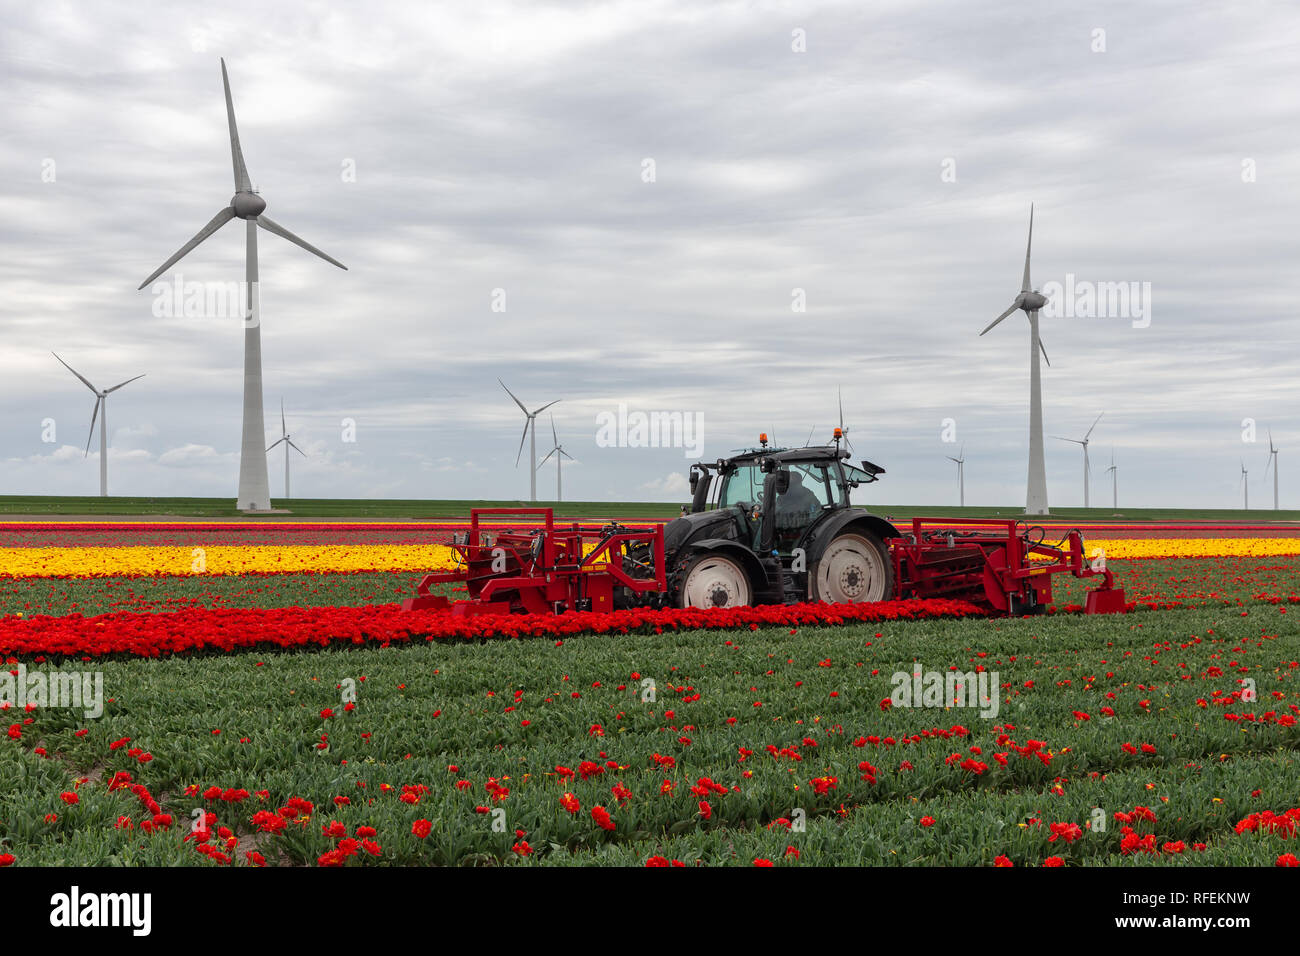 Tractor harvesting tulips on the field with mechanical device - Stock Image